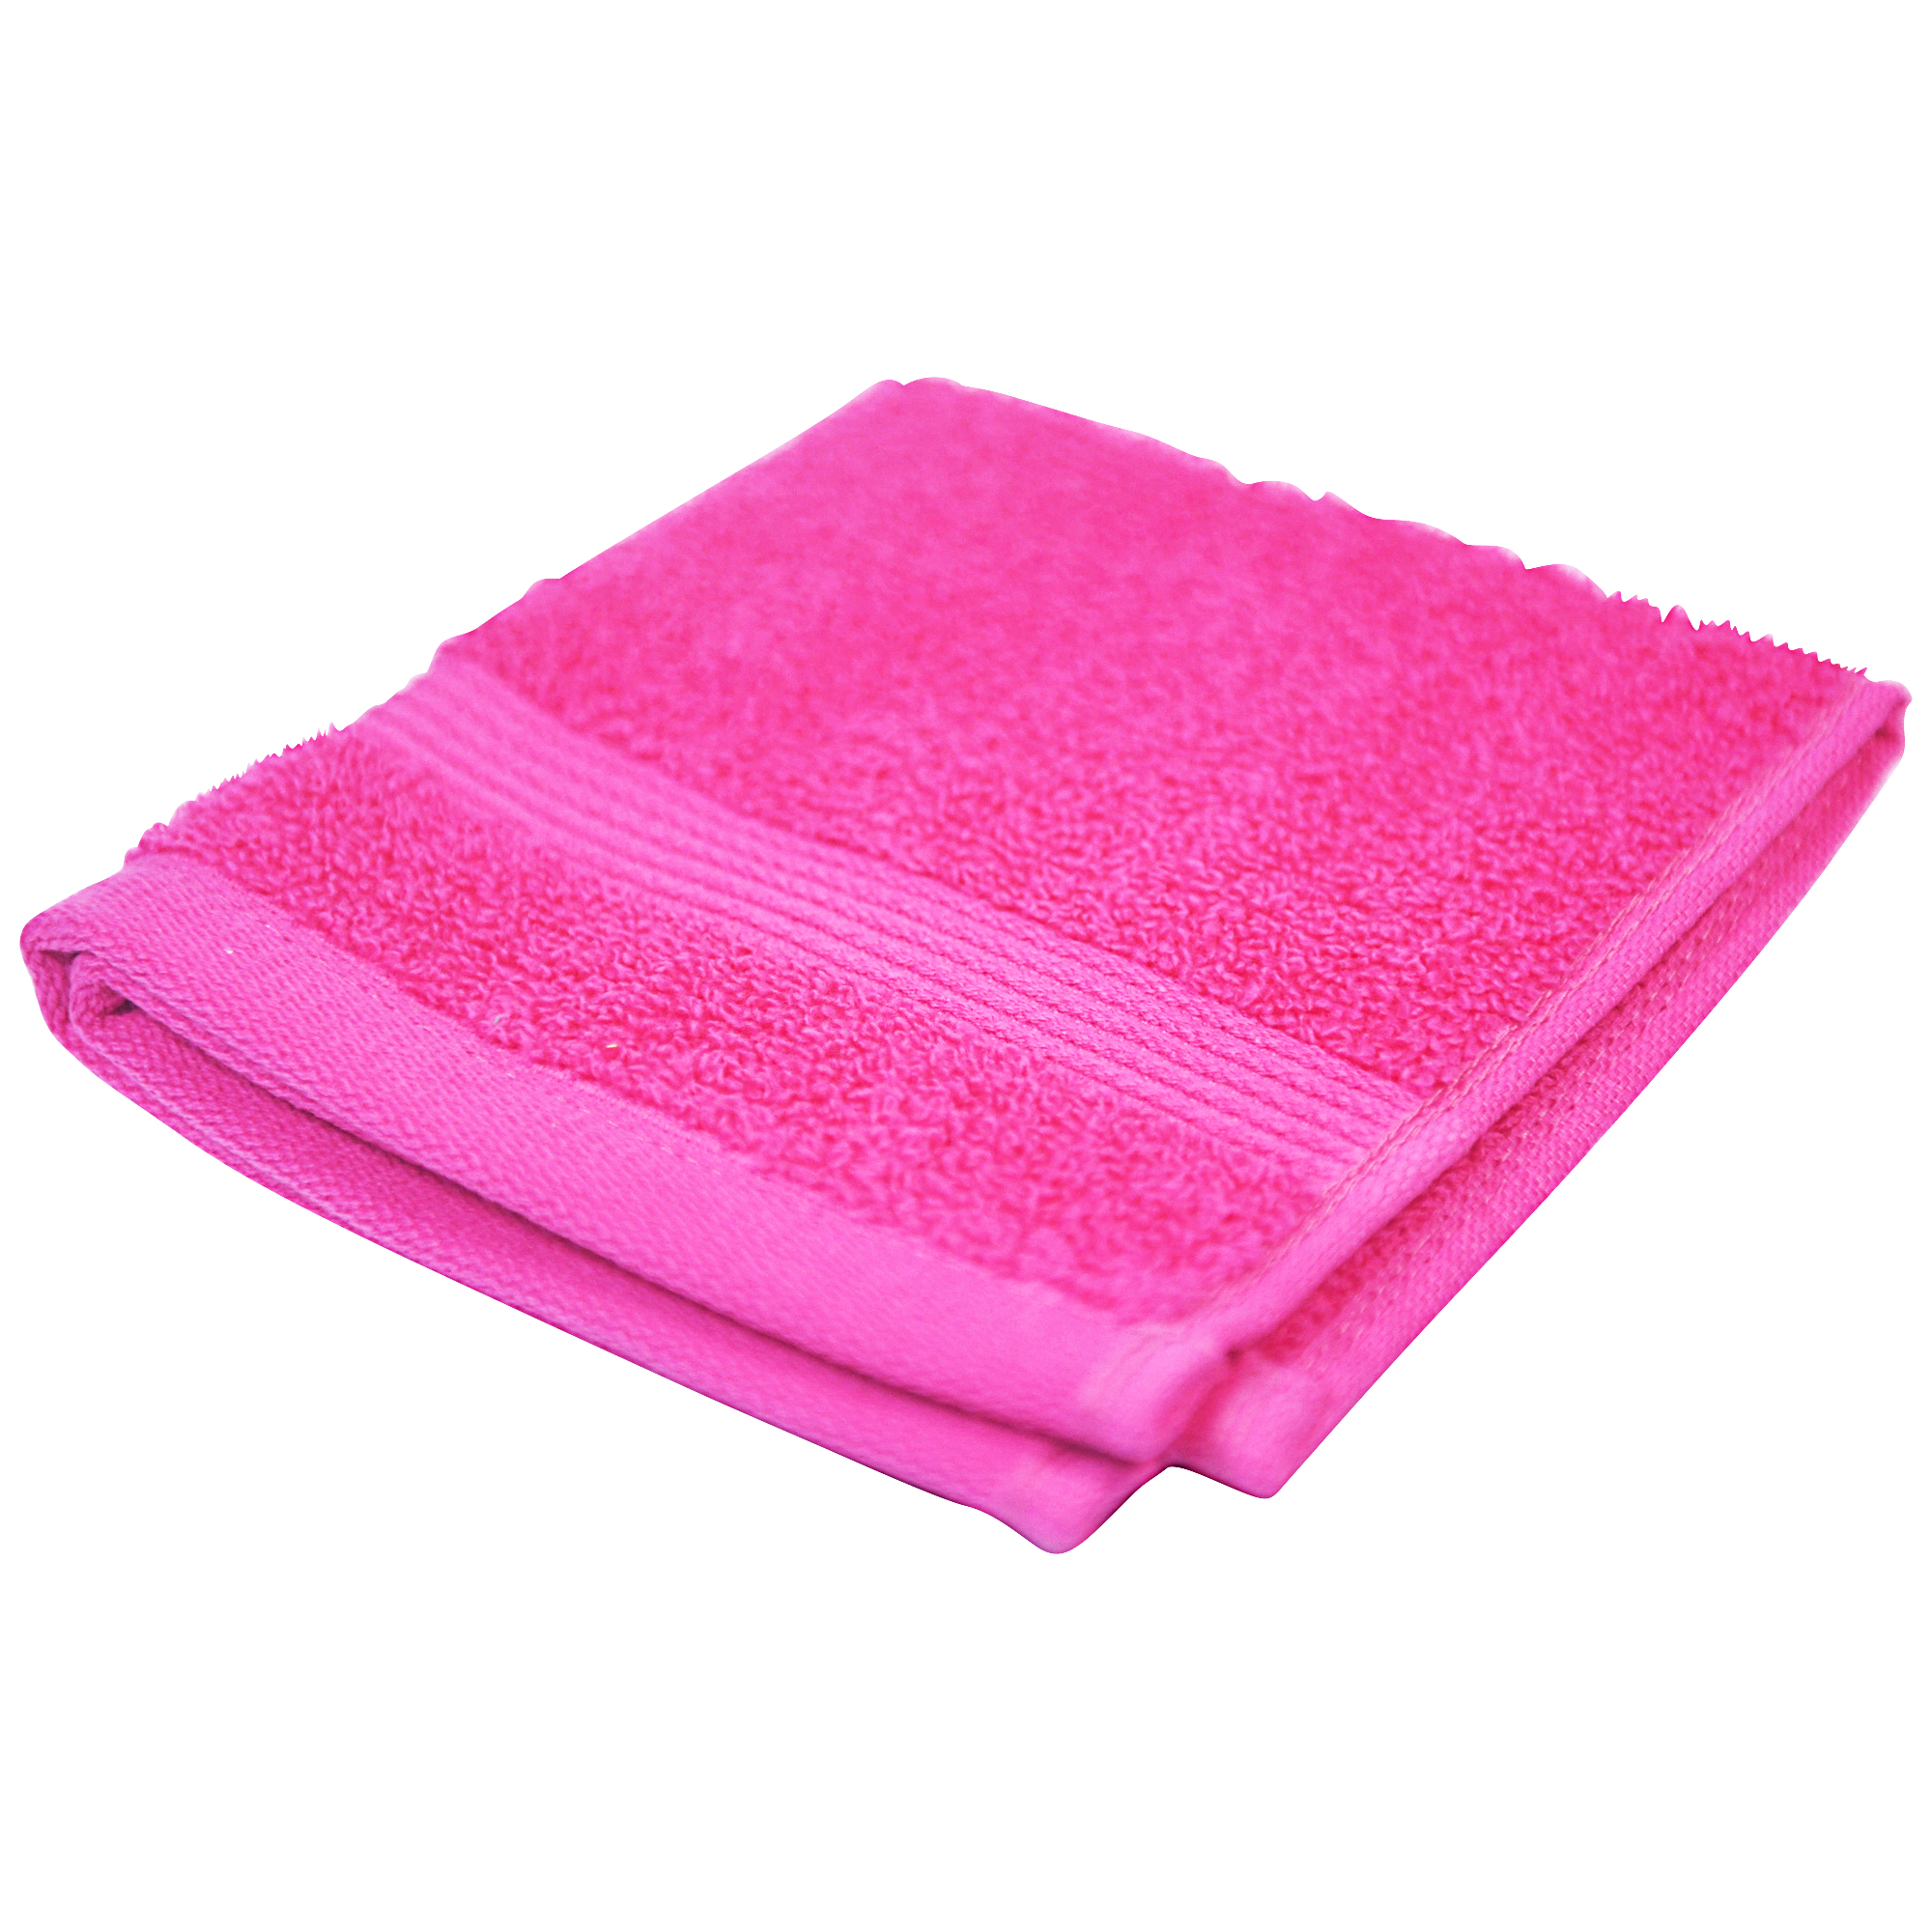 [Discontinued] Mainstays Performance Towel Collection